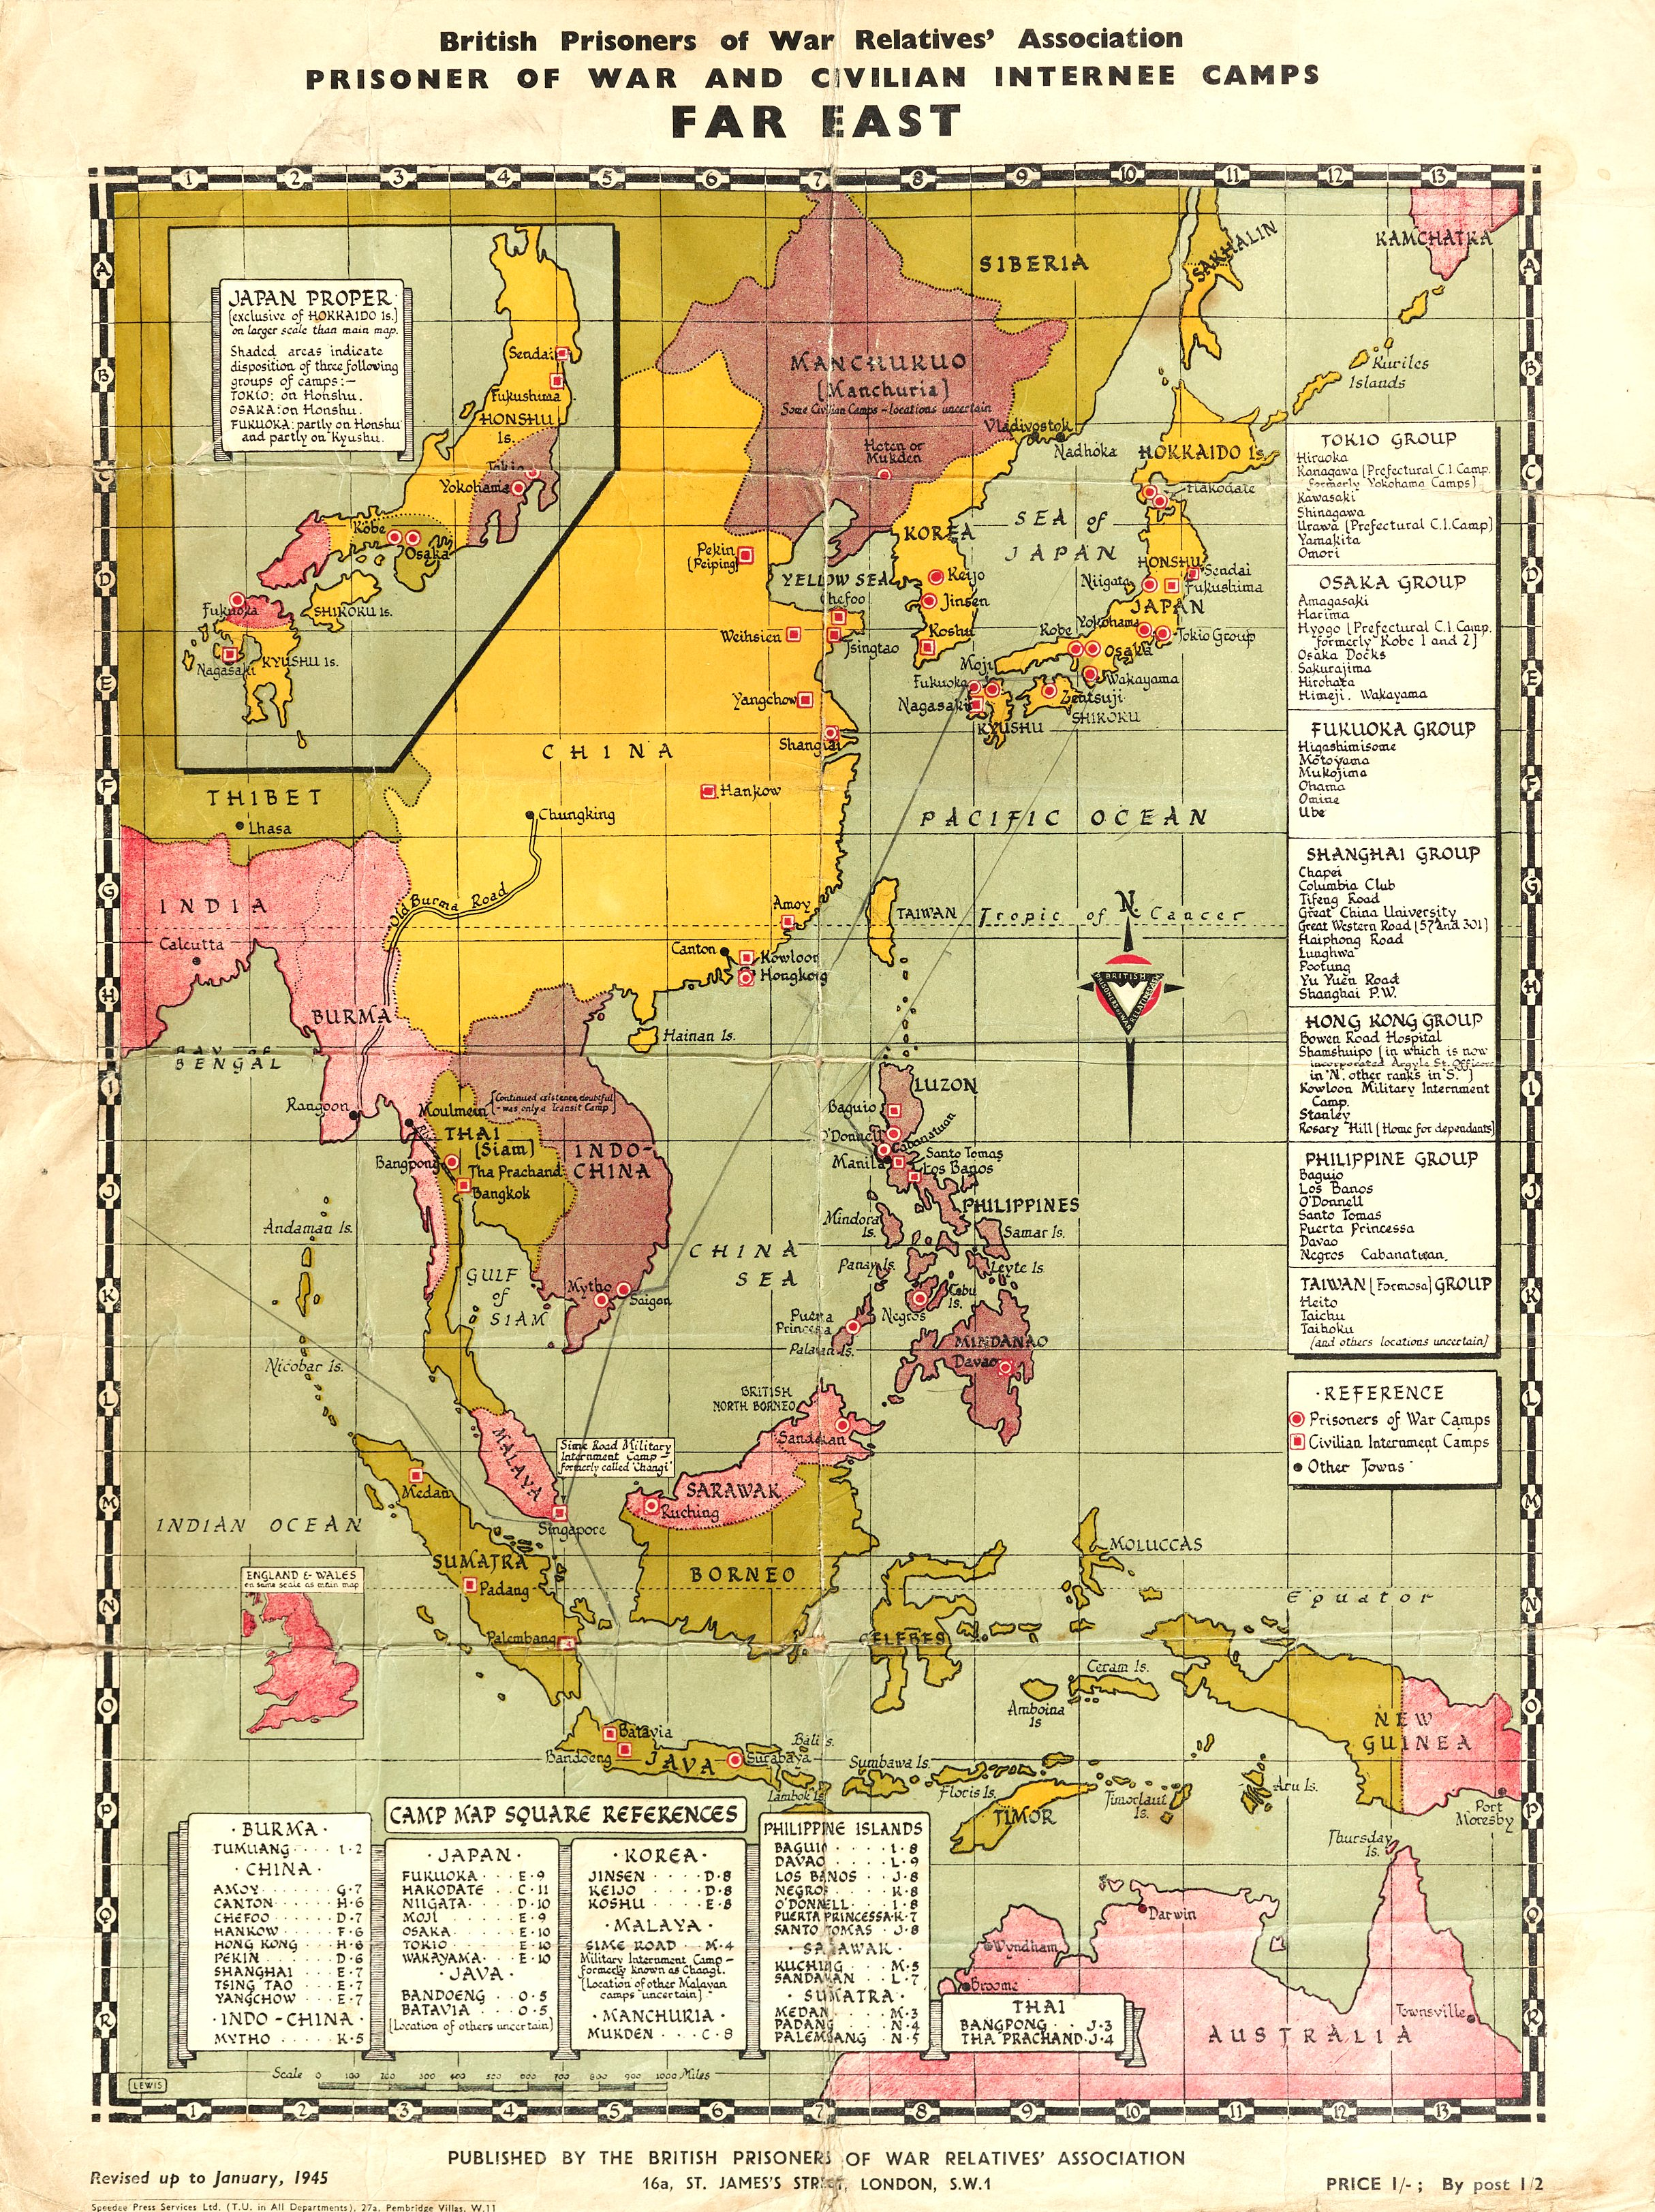 Printed colour map showing the far east including India, Thailand, Philipines, Singapore etc with the camps marked on